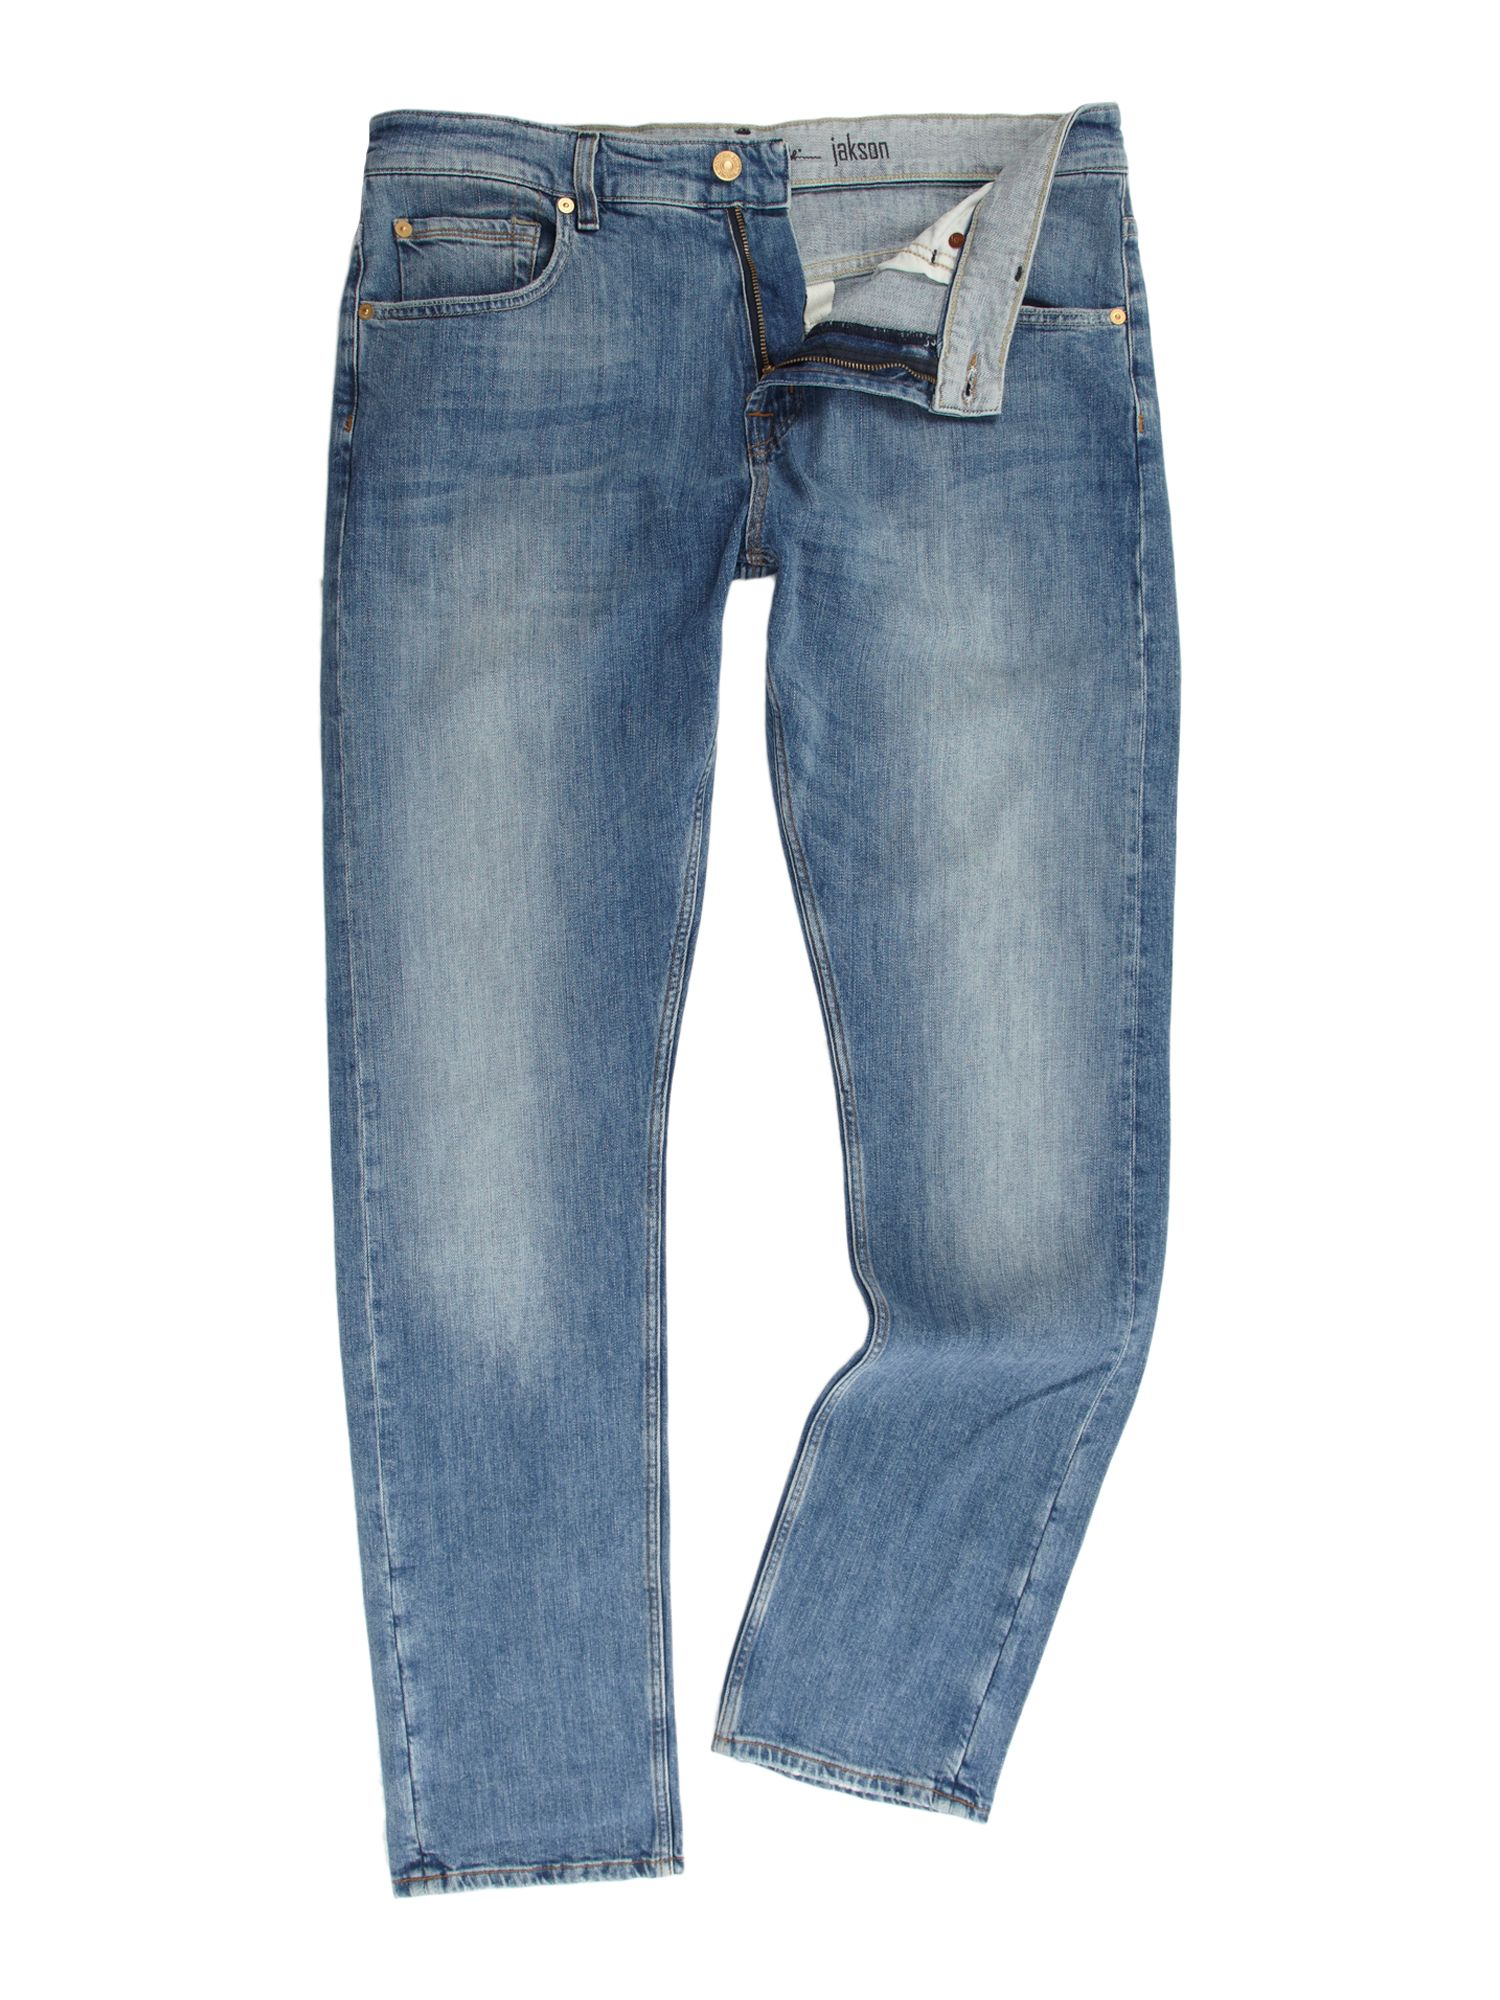 7 for all mankind jackson tapered jeans in blue for men lyst. Black Bedroom Furniture Sets. Home Design Ideas